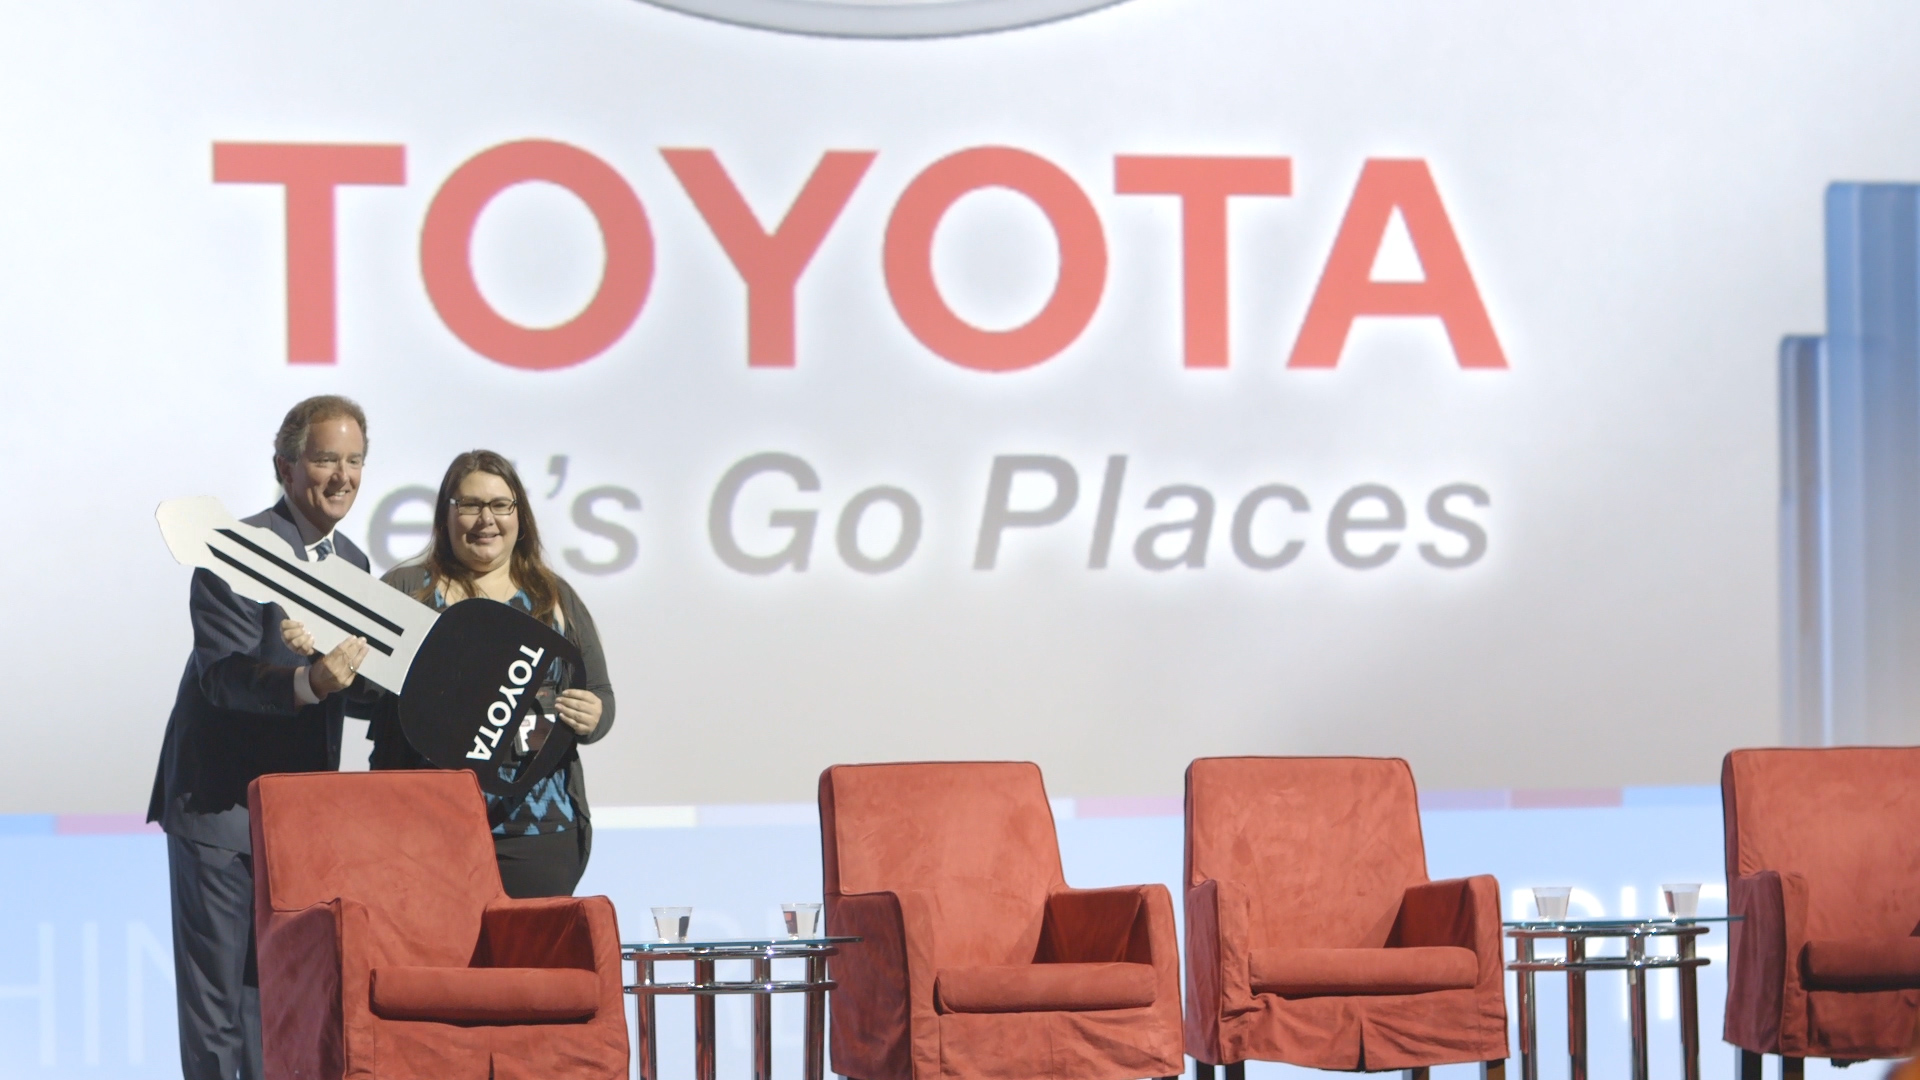 where would you go in a new Toyota Prius